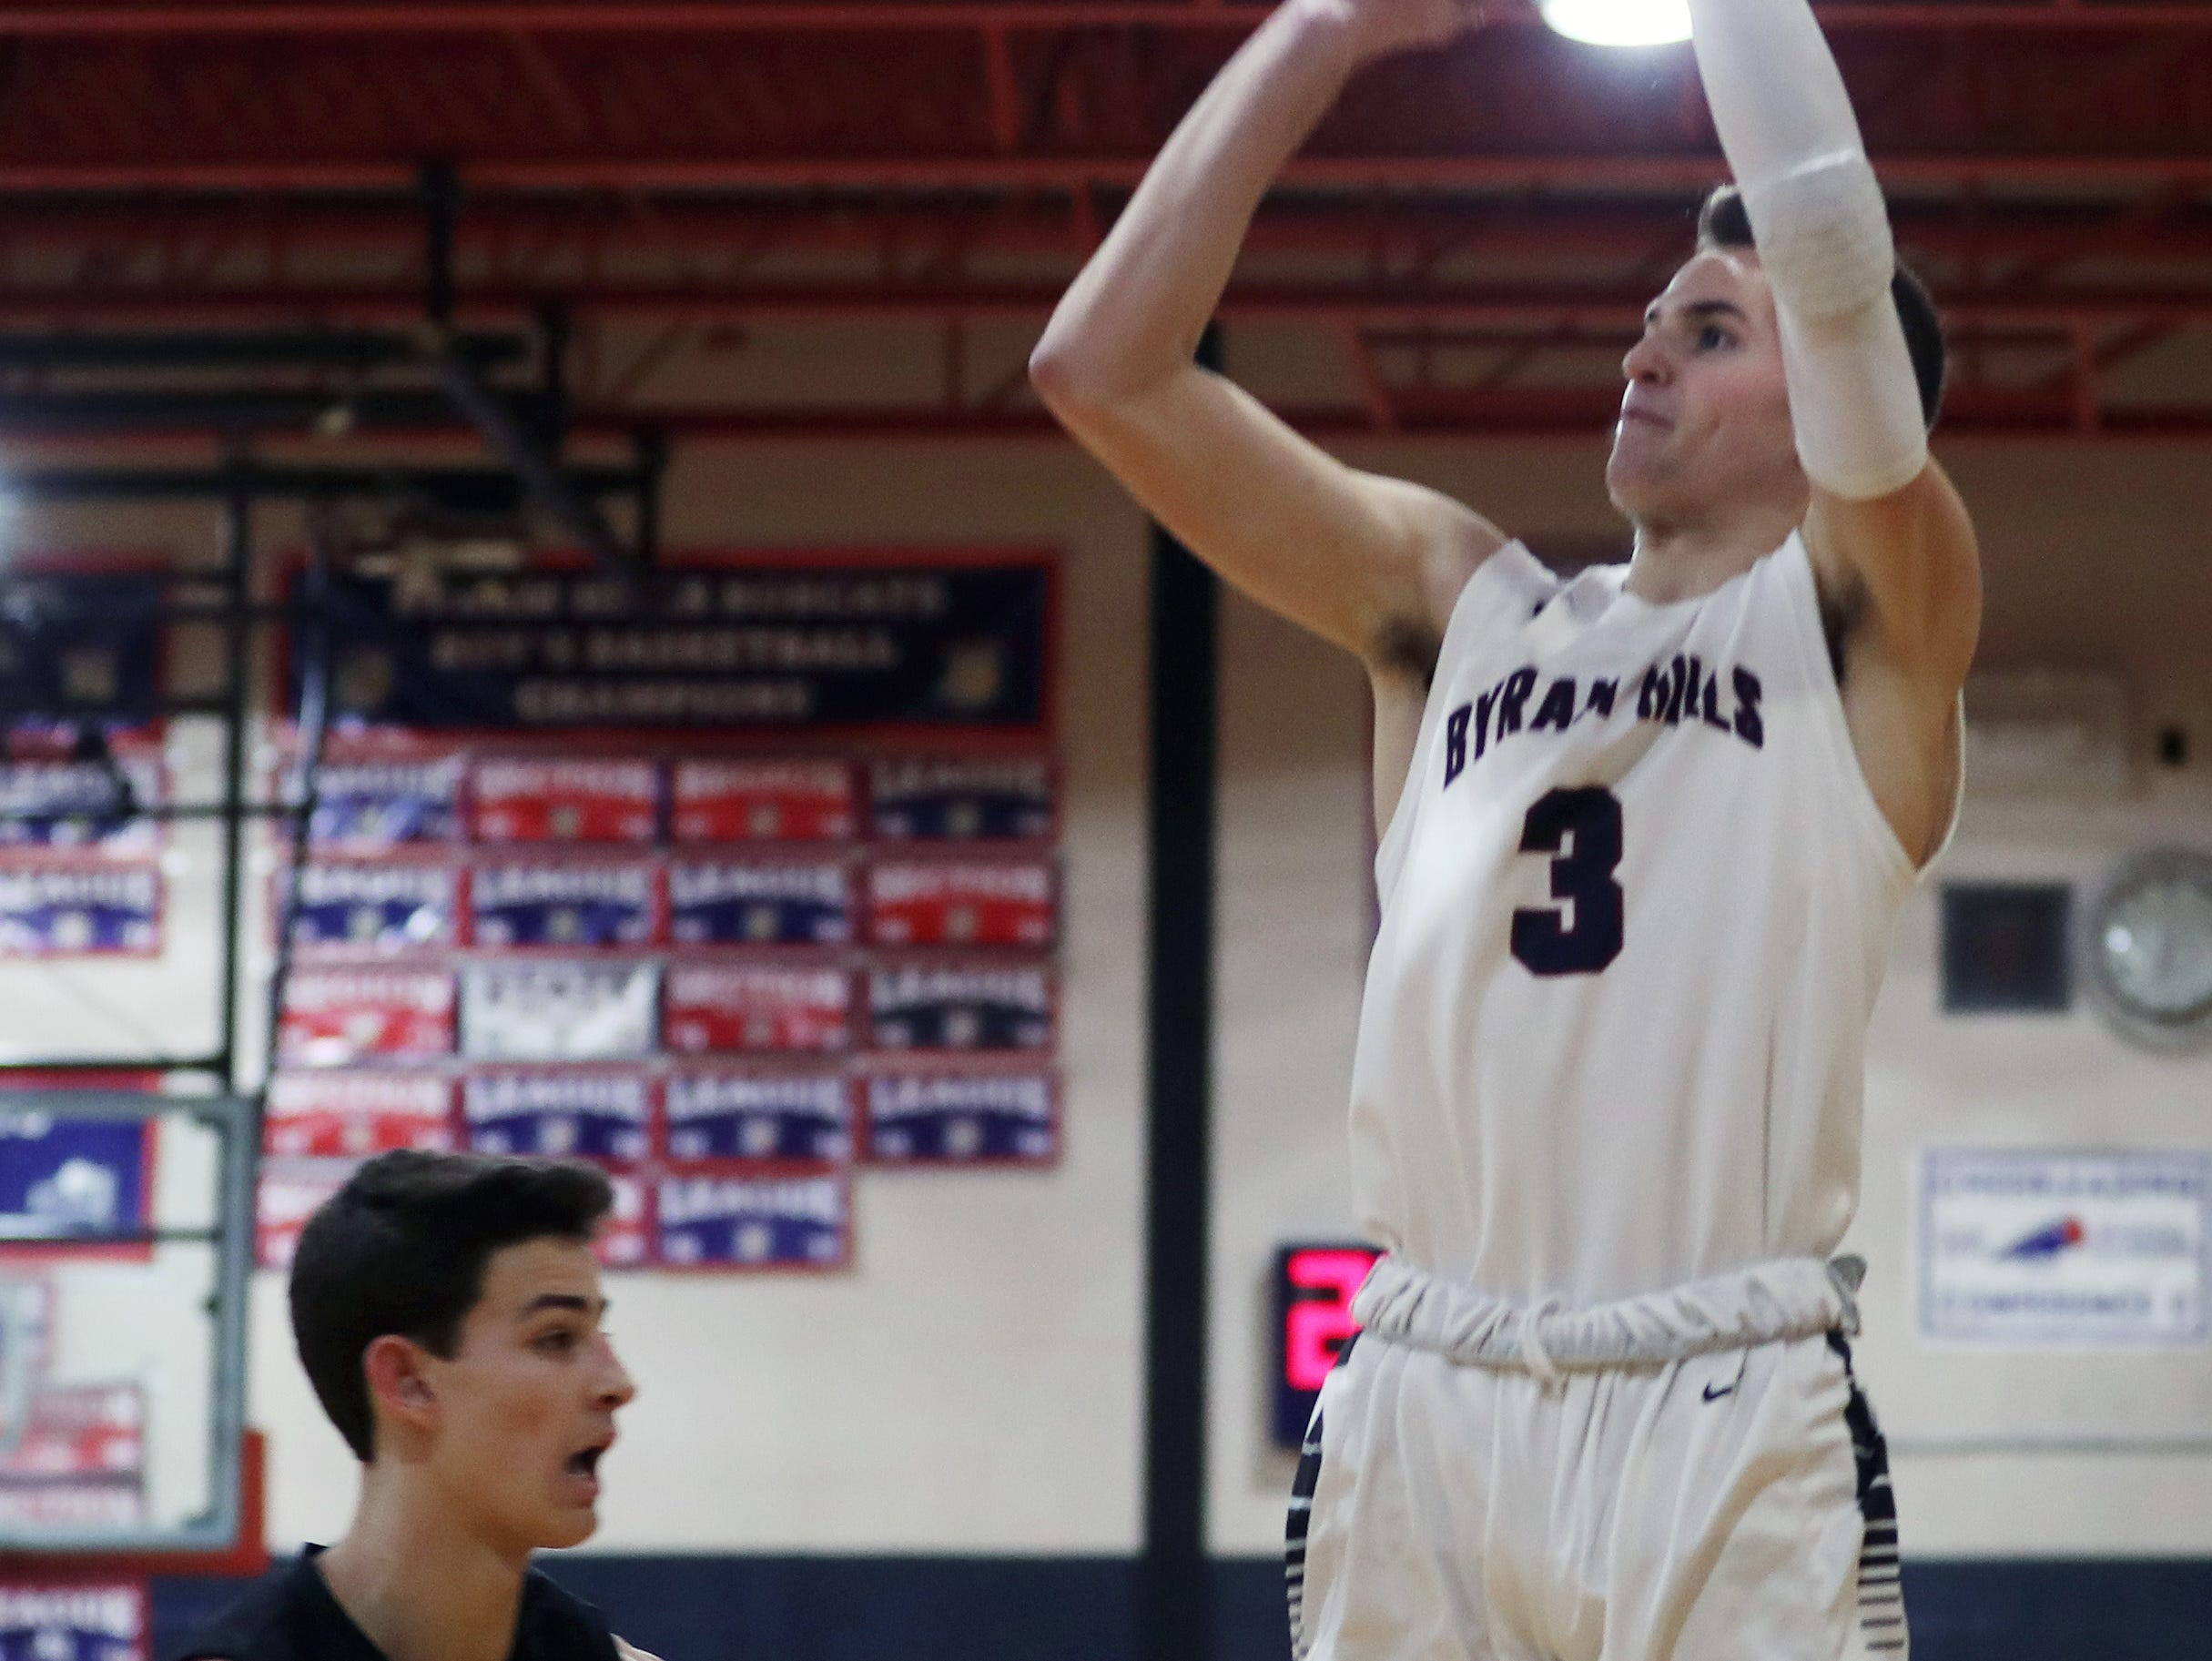 Byram Hills defeated Rye 41-34 during  boys basketball action at Byram Hills High School in Armonk Jan. 10, 2019.